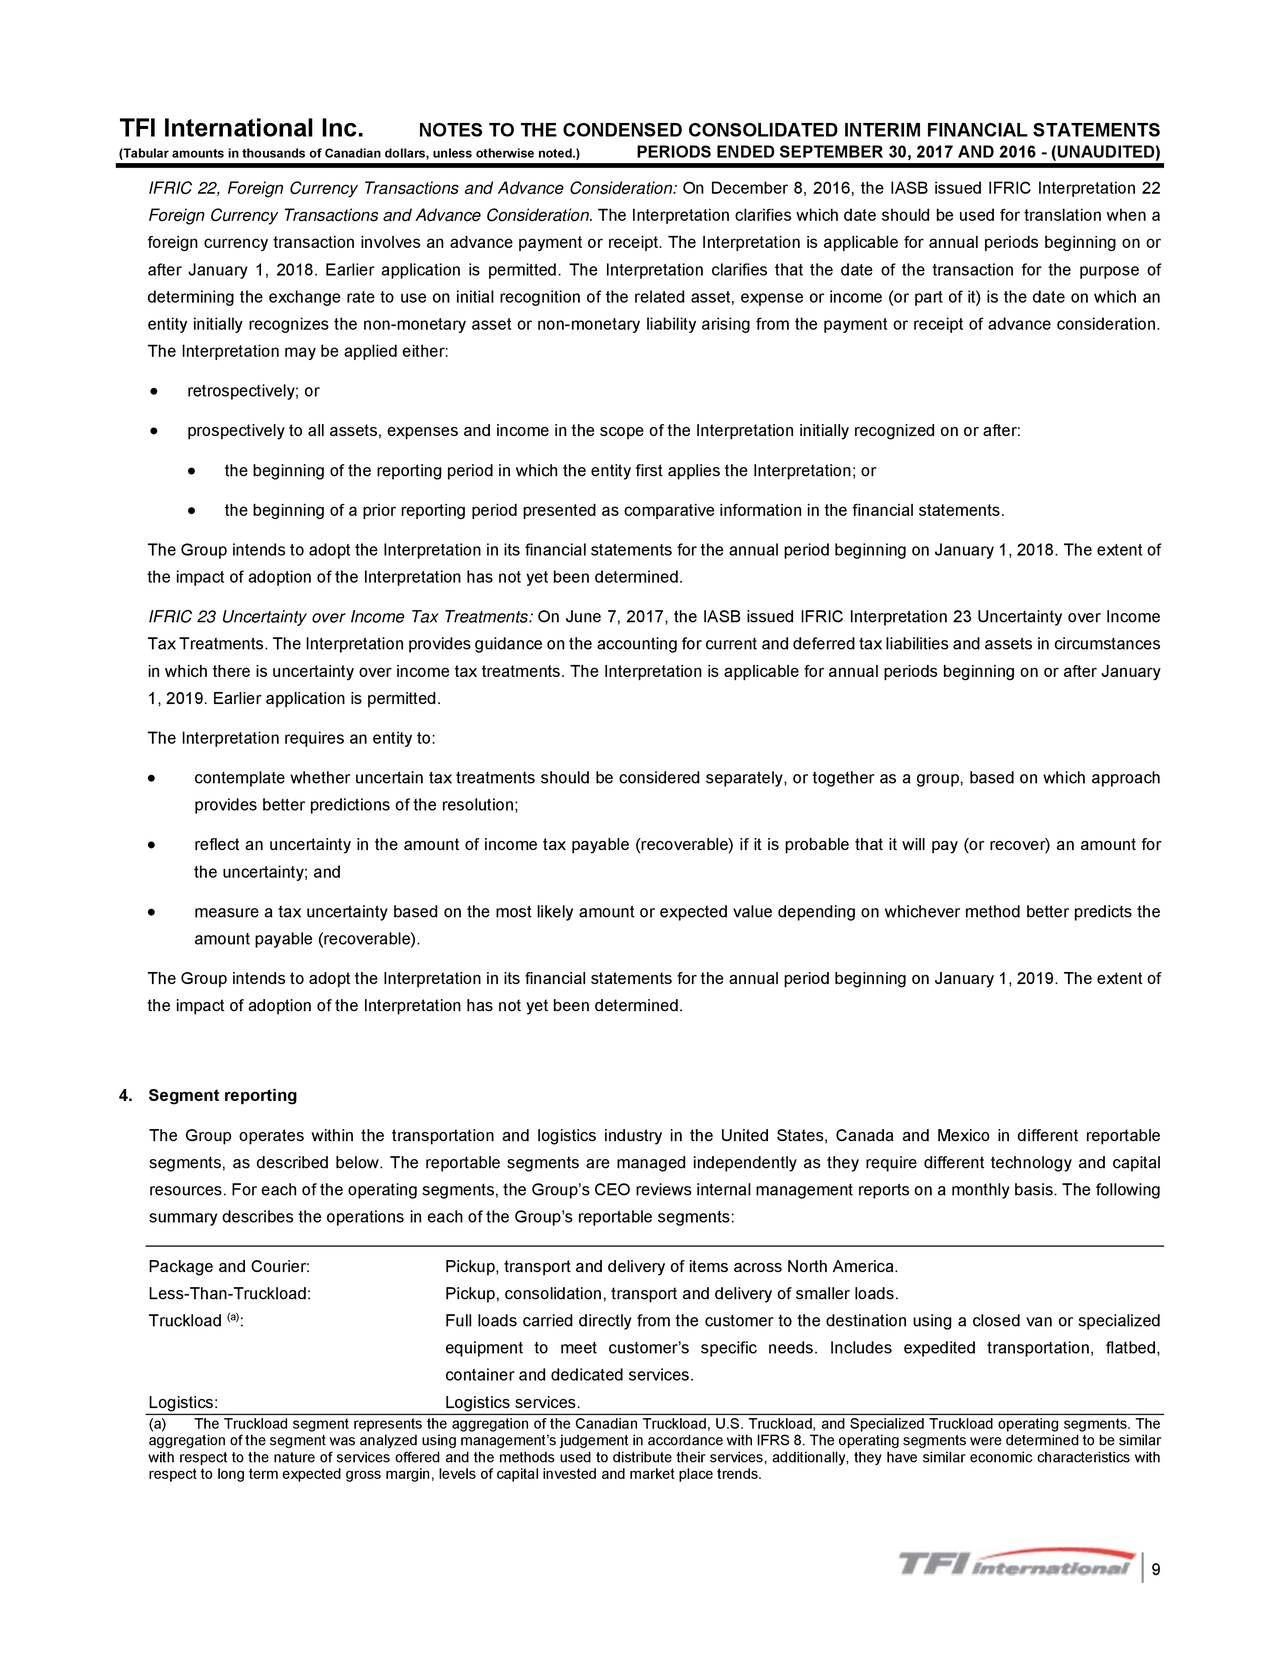 ifrs share consolidation application guidance